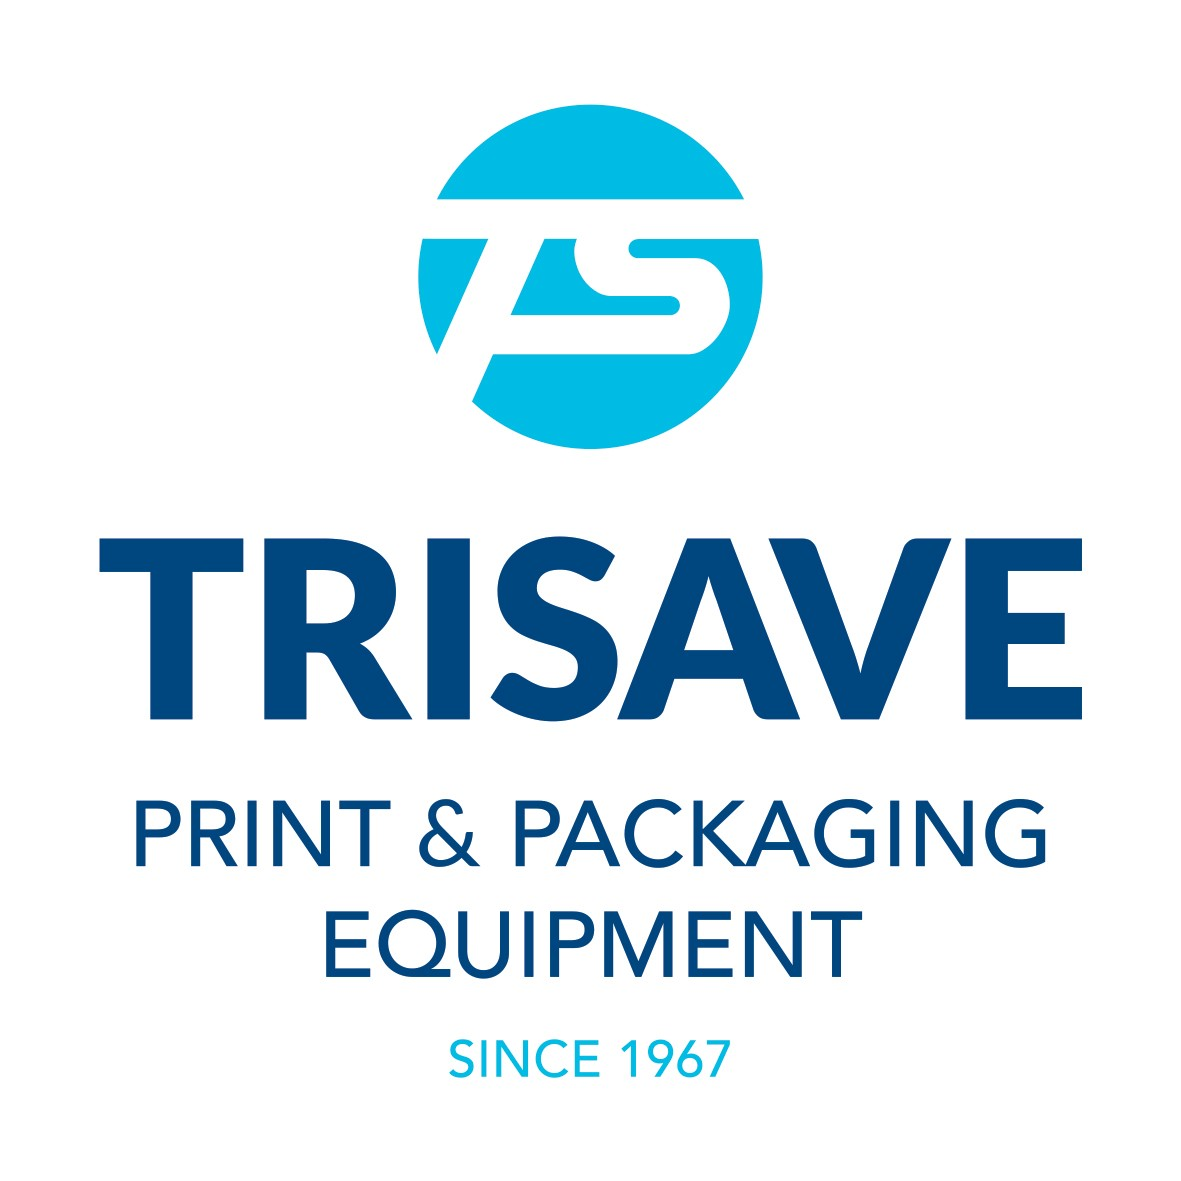 Suppliers to the Printing, Packaging & Signage Industries in